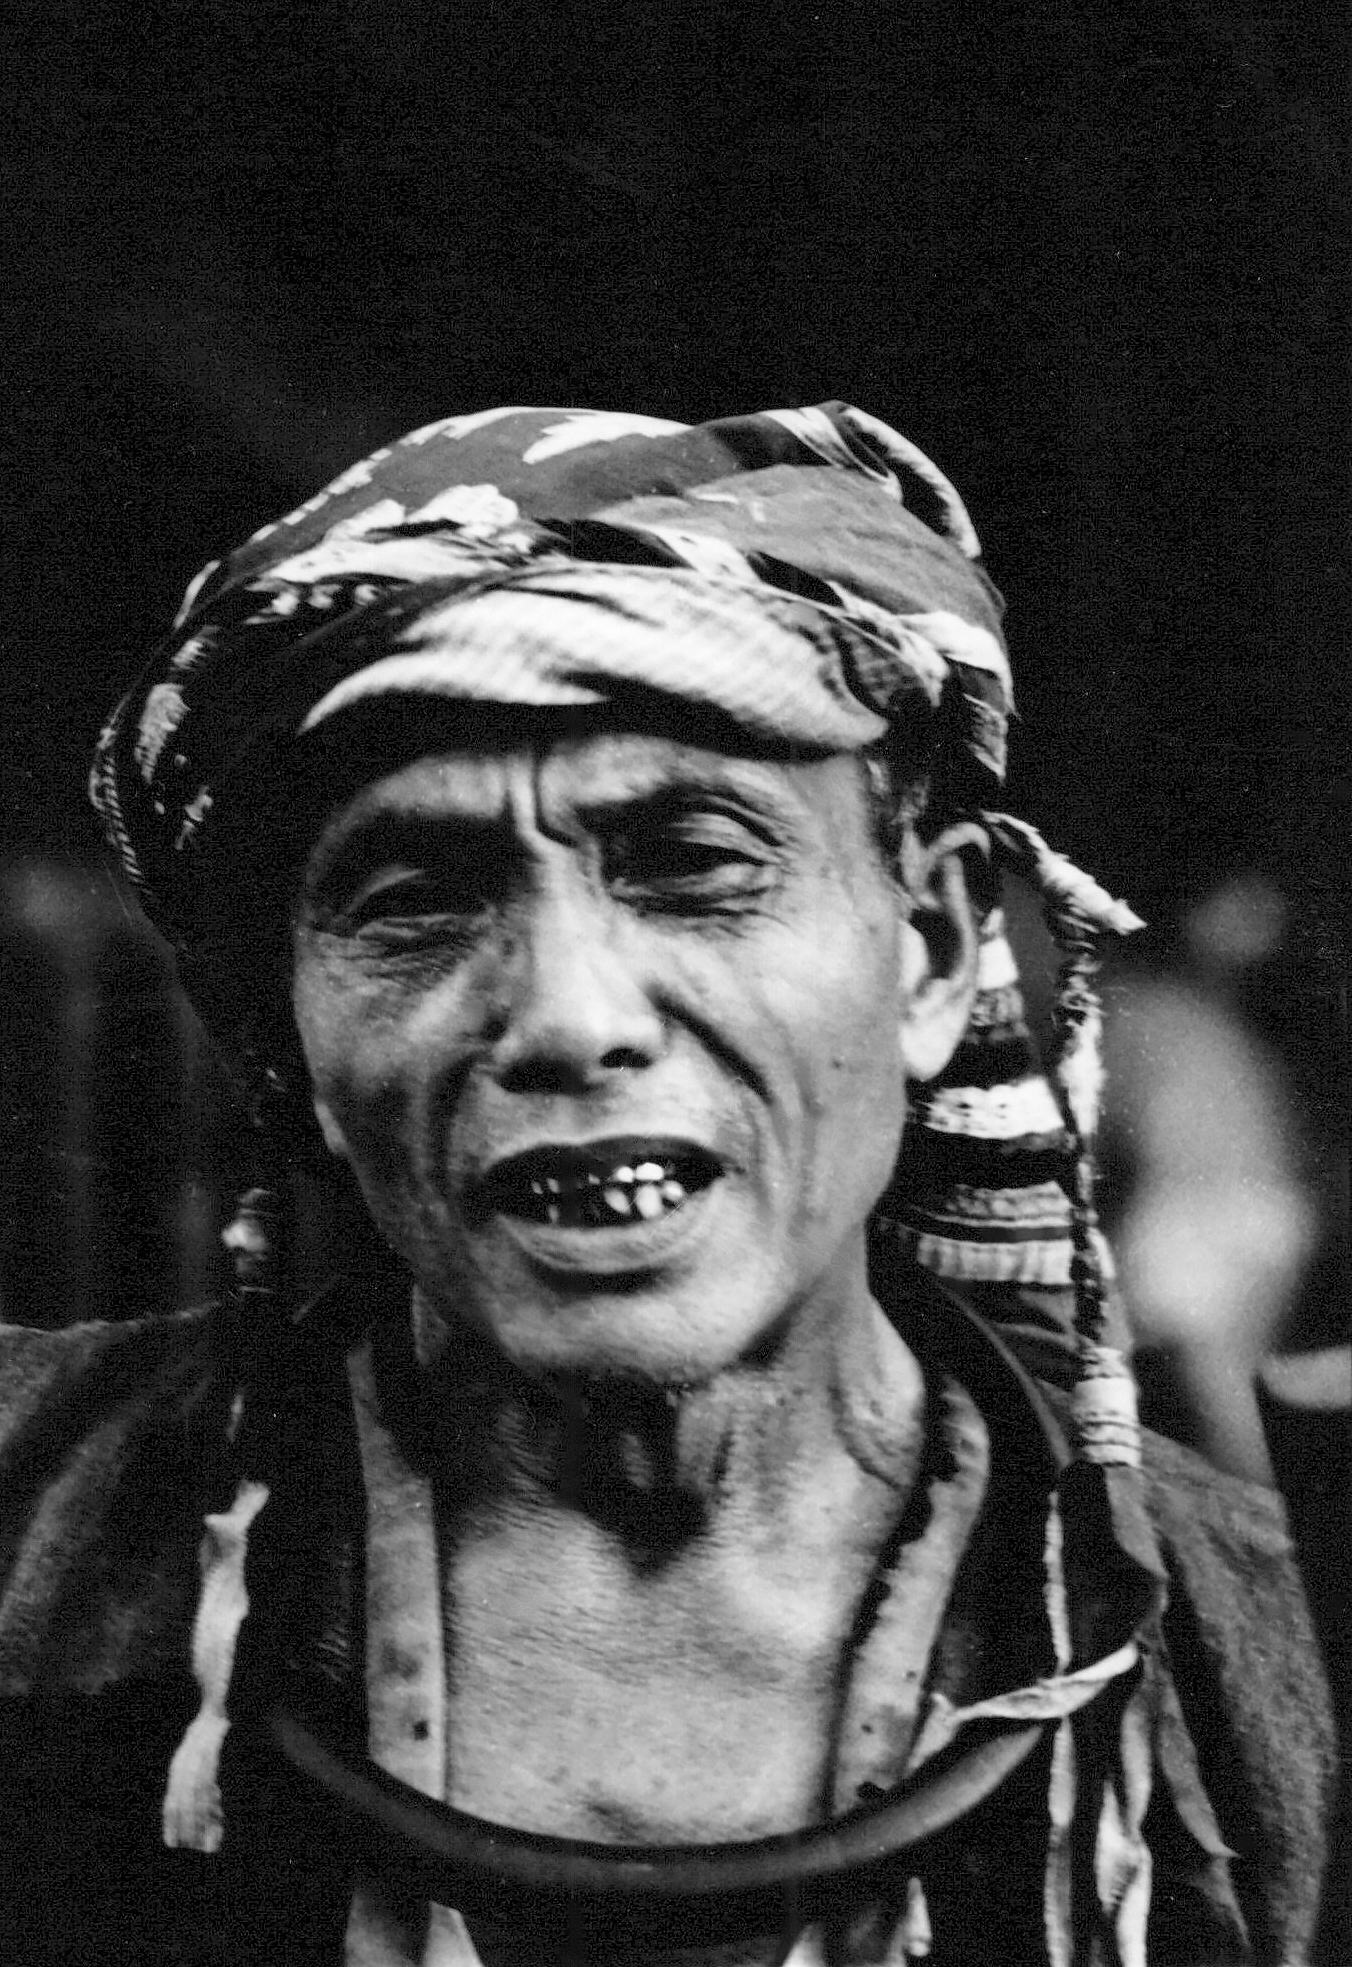 A villager of Orahili, South Nias, with a golden smile. (Photograph Maggie de Moor, 1985)